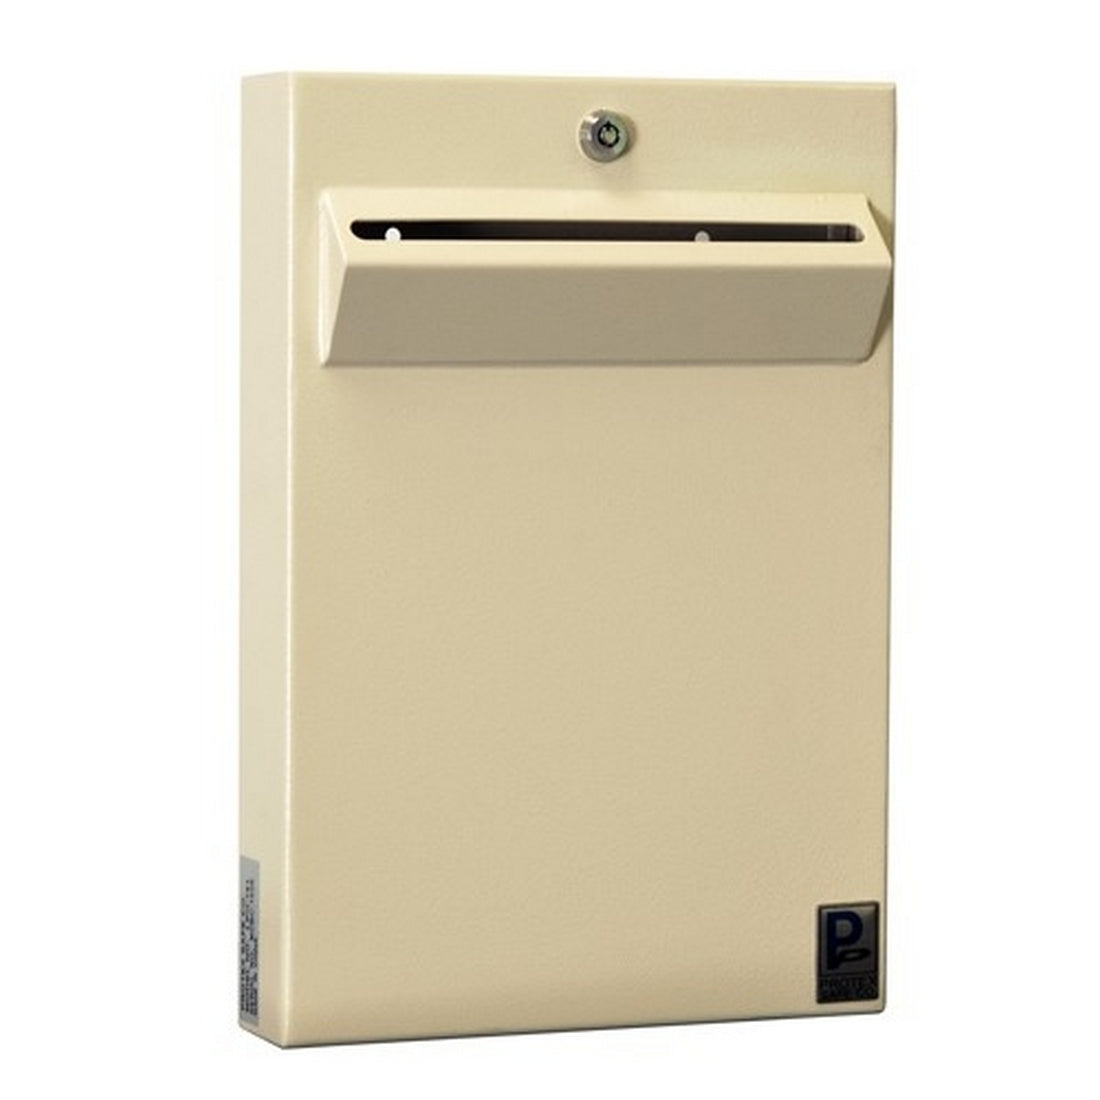 Protex Safe LPD-161 Protex Low-Profile Wall Mount Drop Box